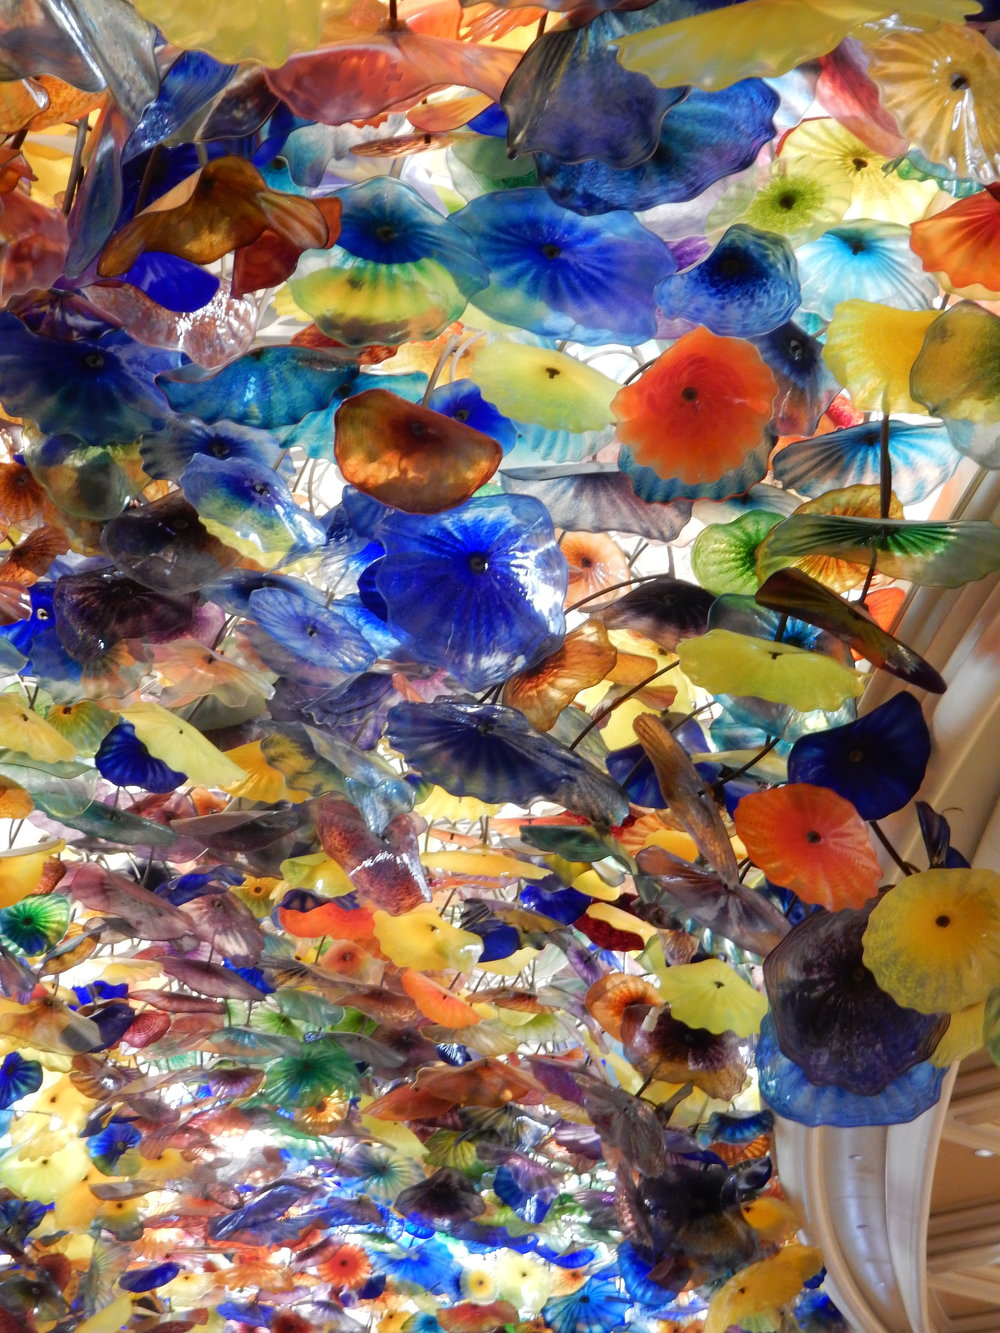 This is the central design in the ceiling of the lobby of The Bellagio. Gorgeous, right?